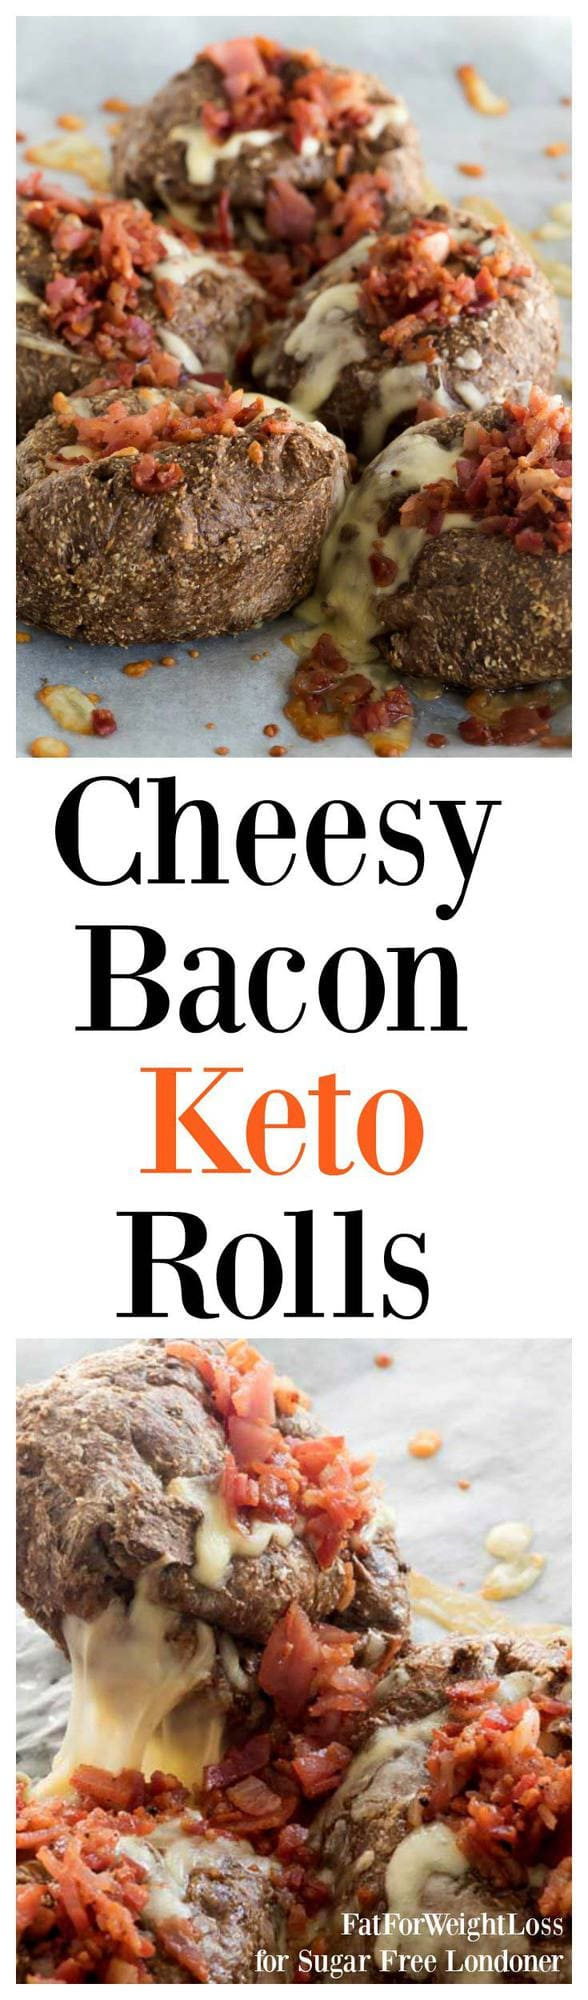 This cheesy bacon bread rolls recipe is a soft fluffy ketogenic bread covered in mozzarella cheese and delicious bacon pieces.